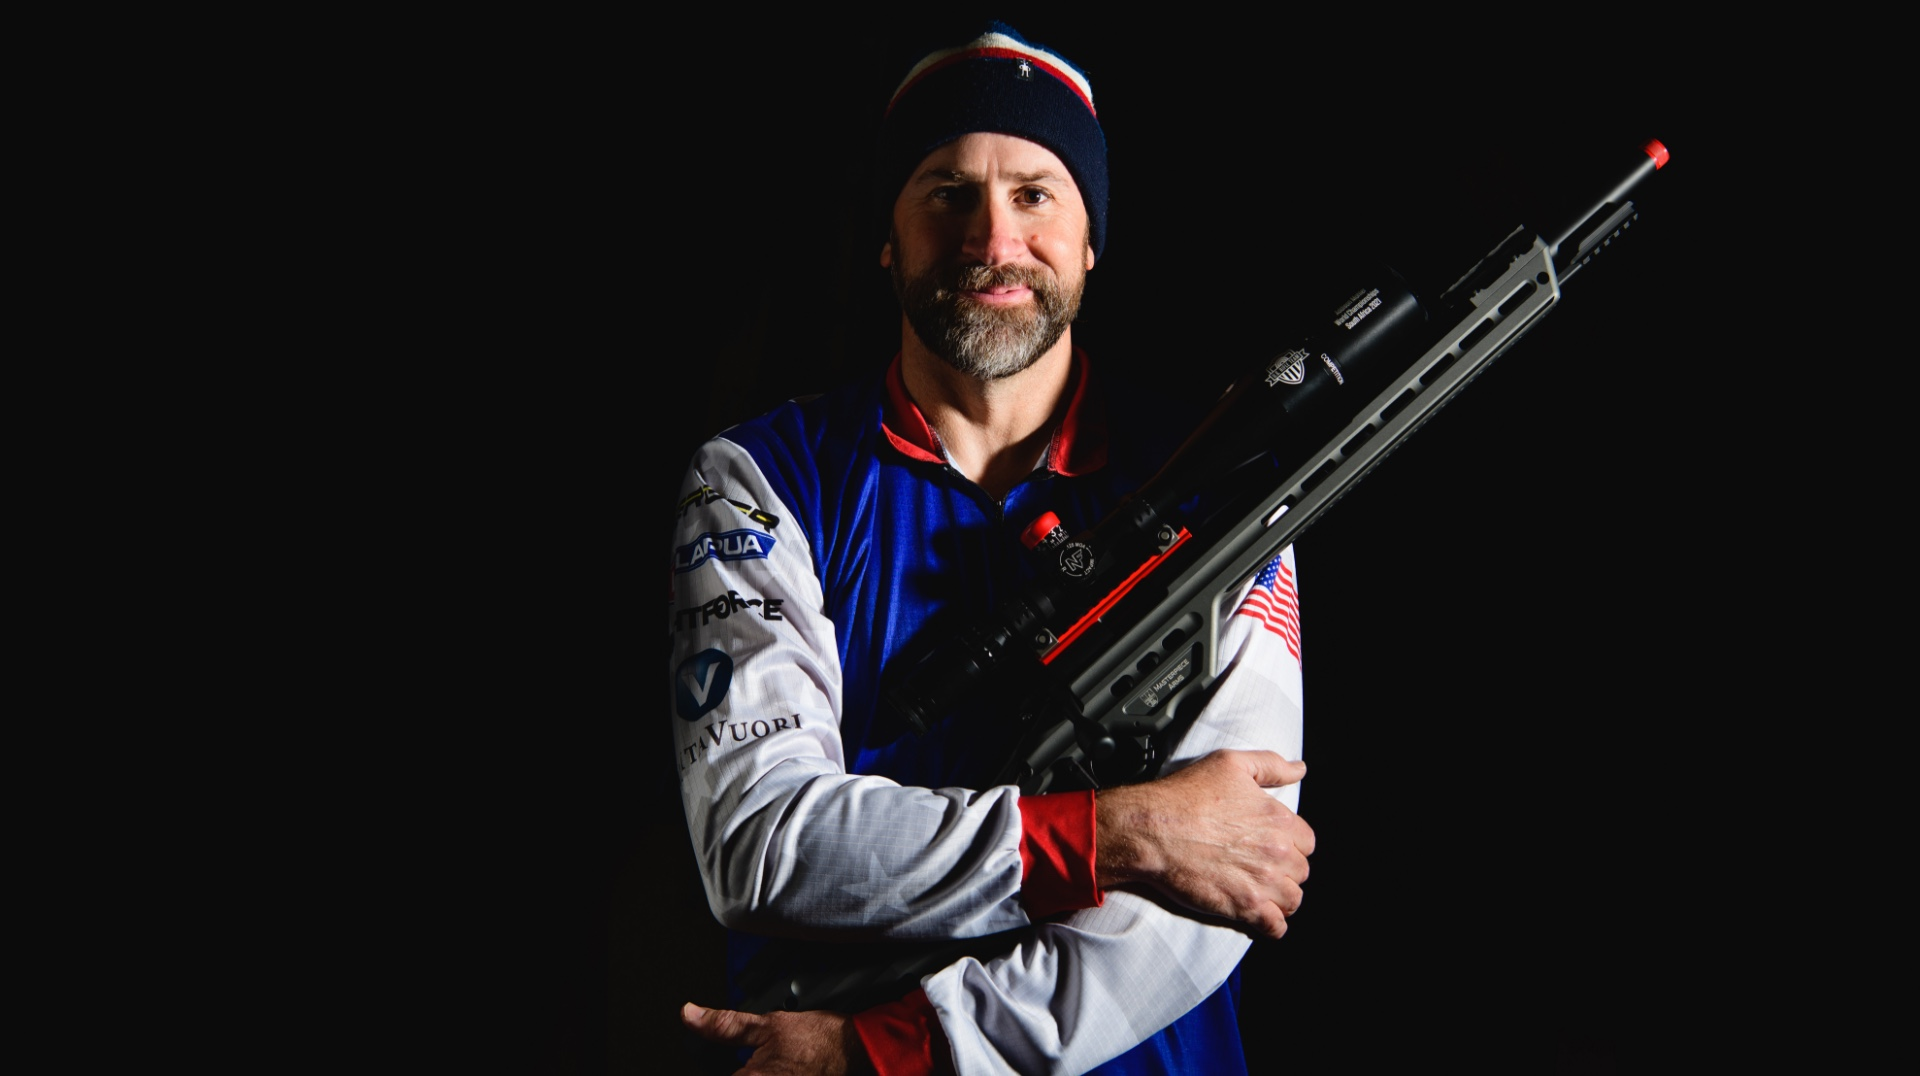 Addison stands with both hands across his chest as he holds up his rifle in his arms and smiles.